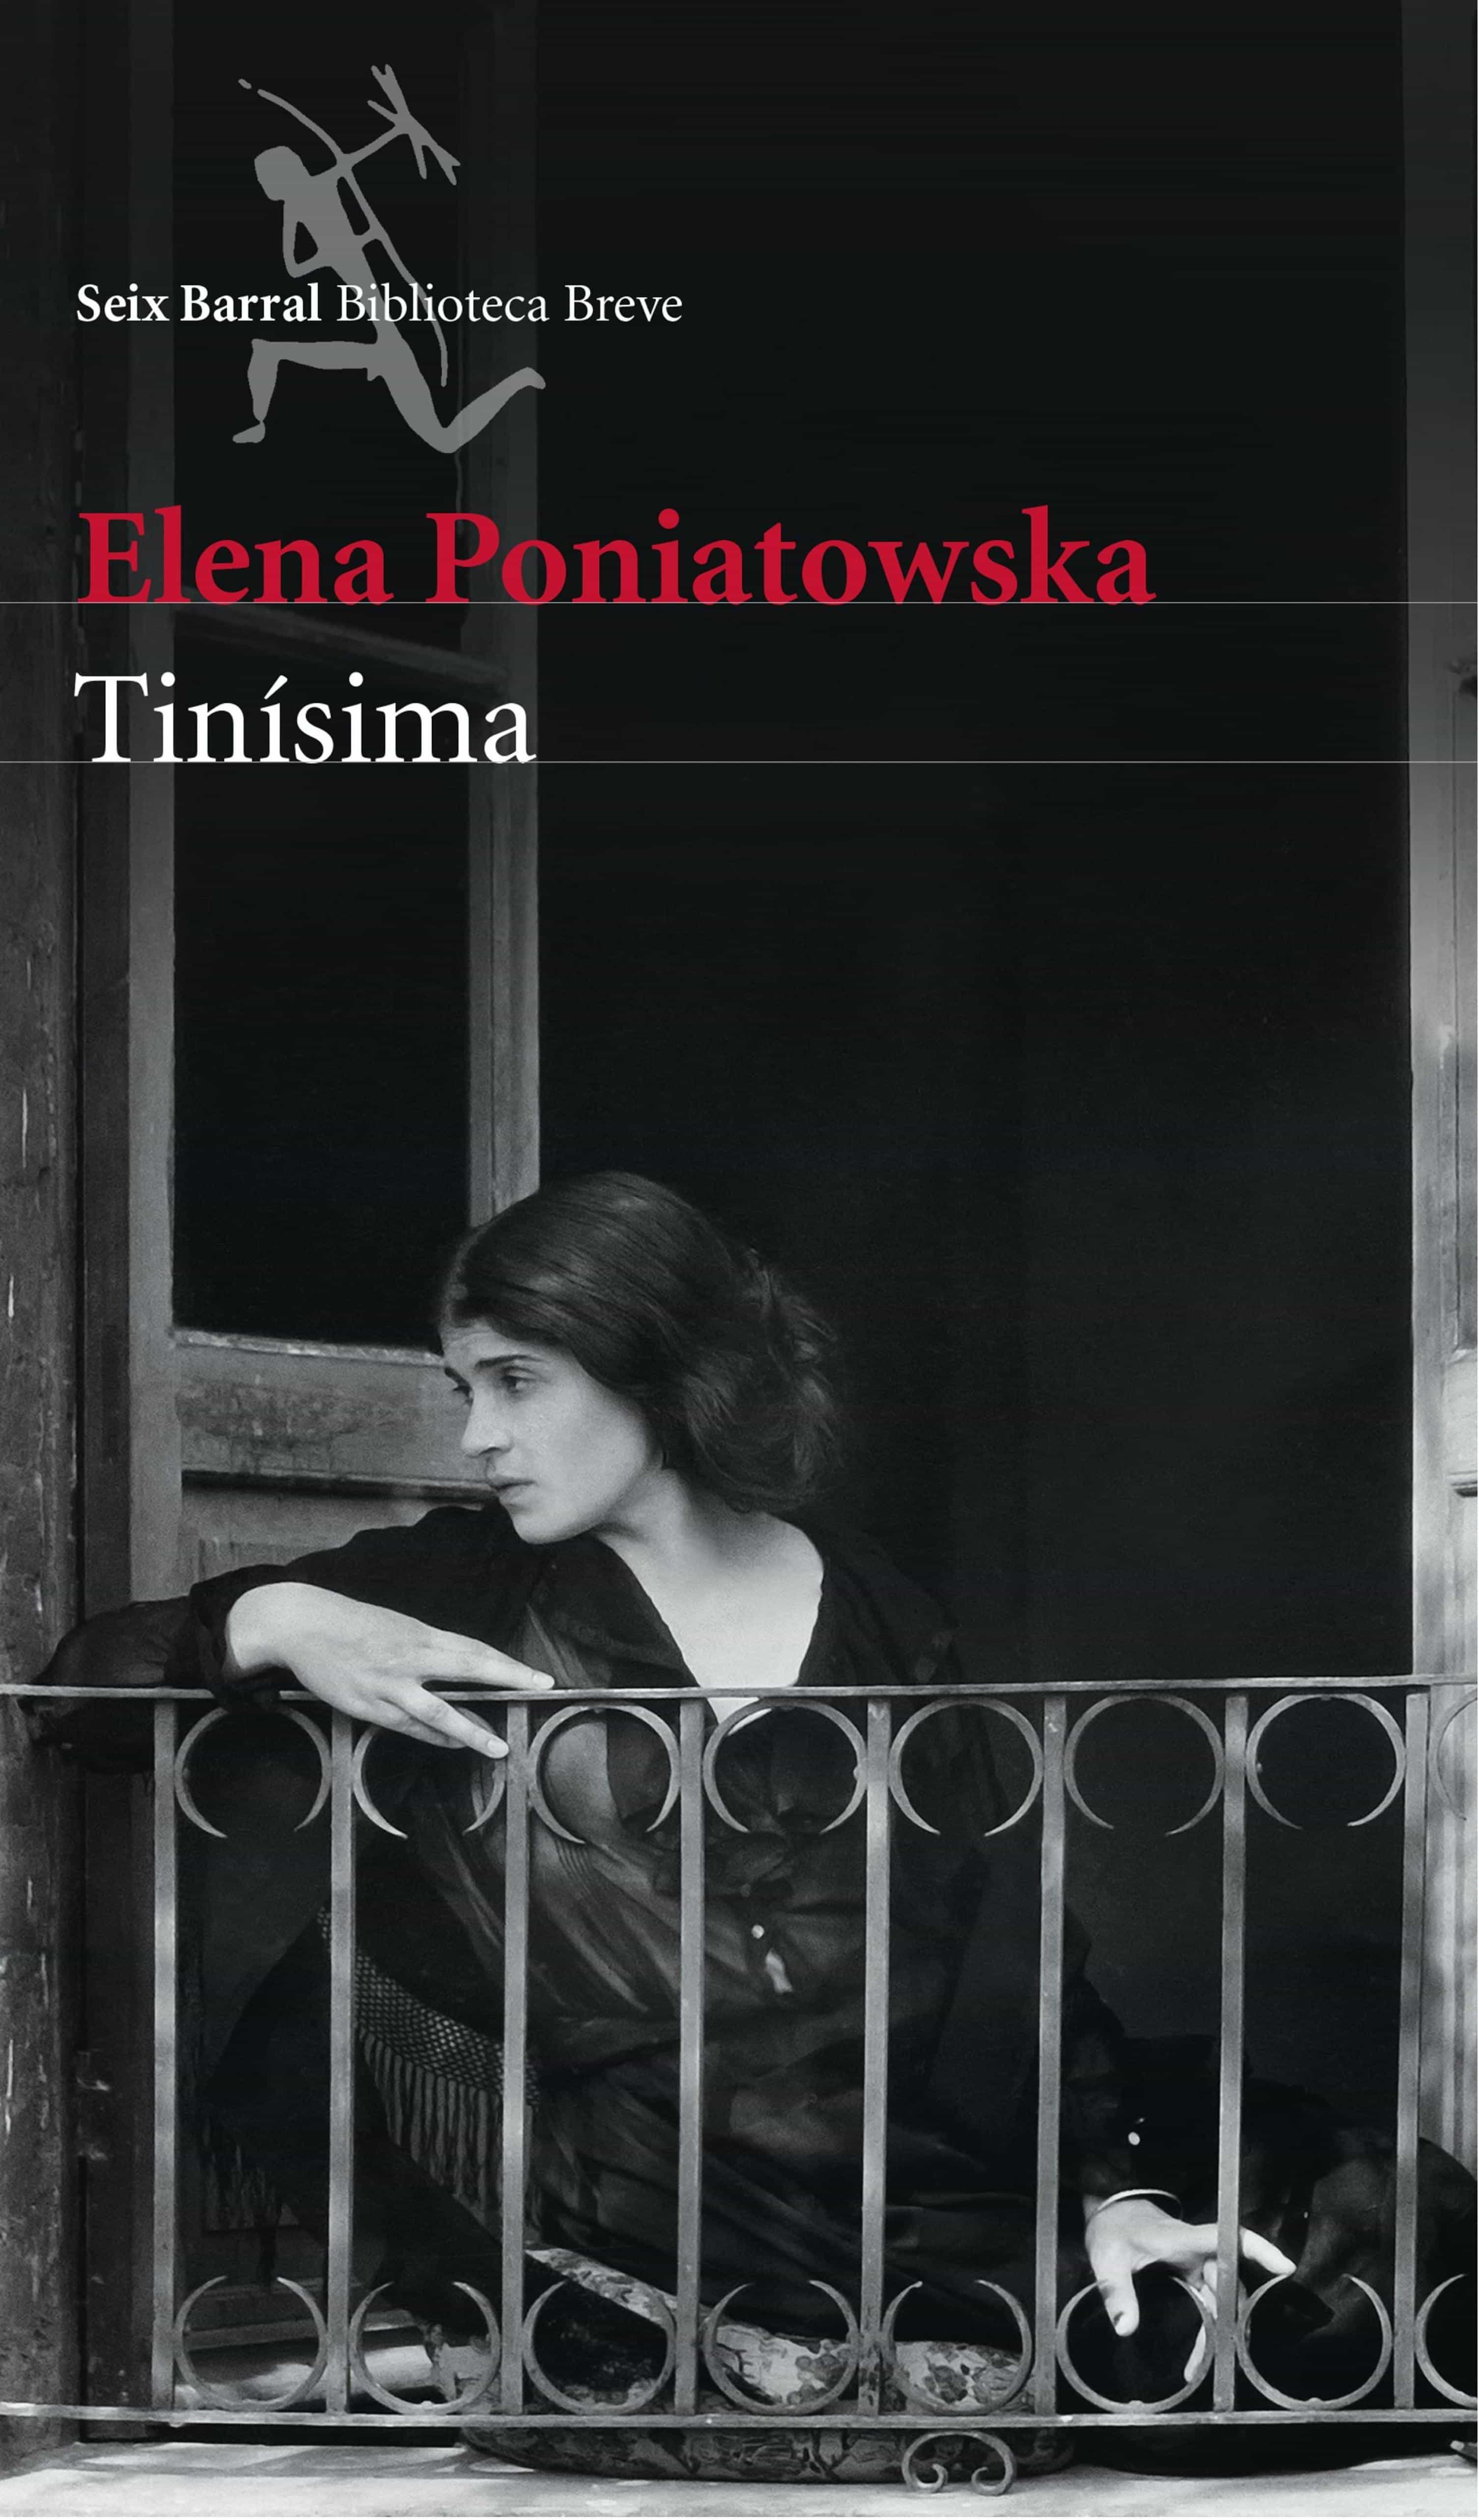 Elena poniatowska tinisima ebook download author fandeluxe